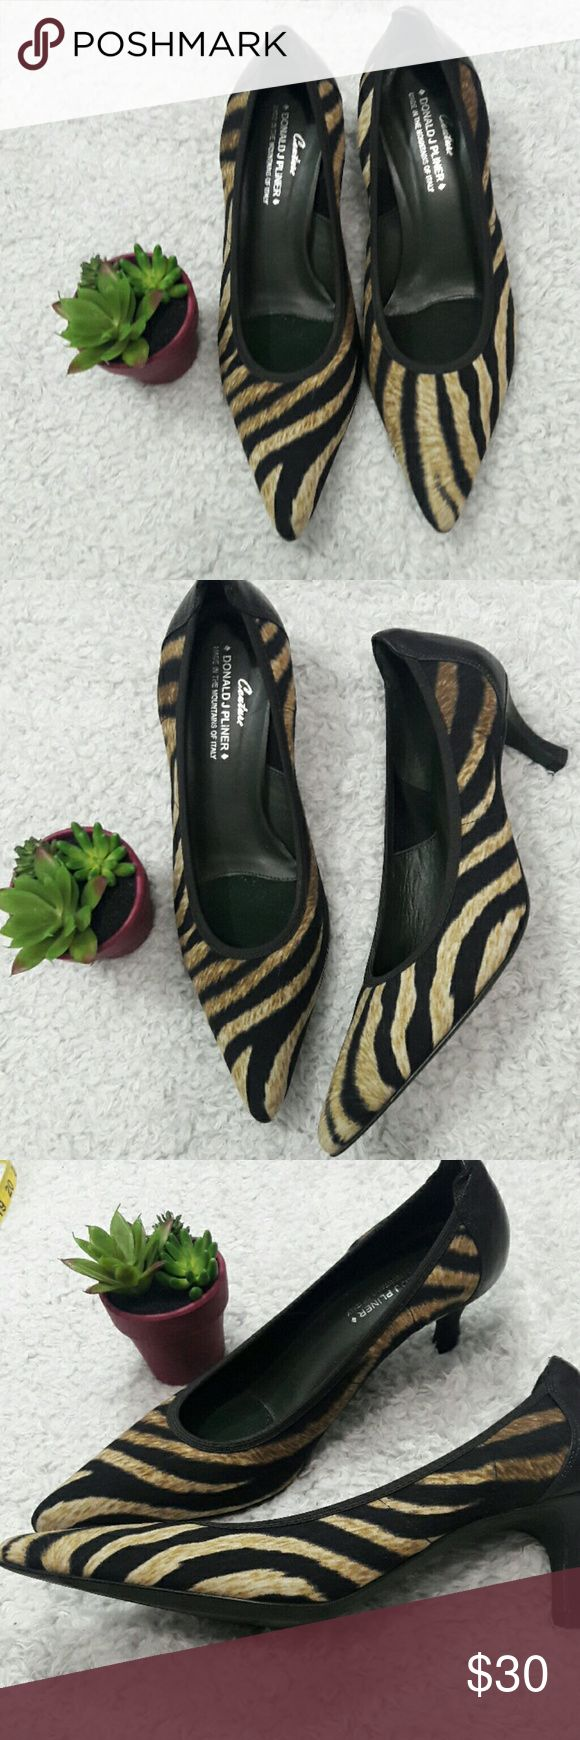 Donald J Pliner Couture Kitten heel size 7.5 M in wonderful condition  2 inch heel Donald J. Pliner Shoes Heels